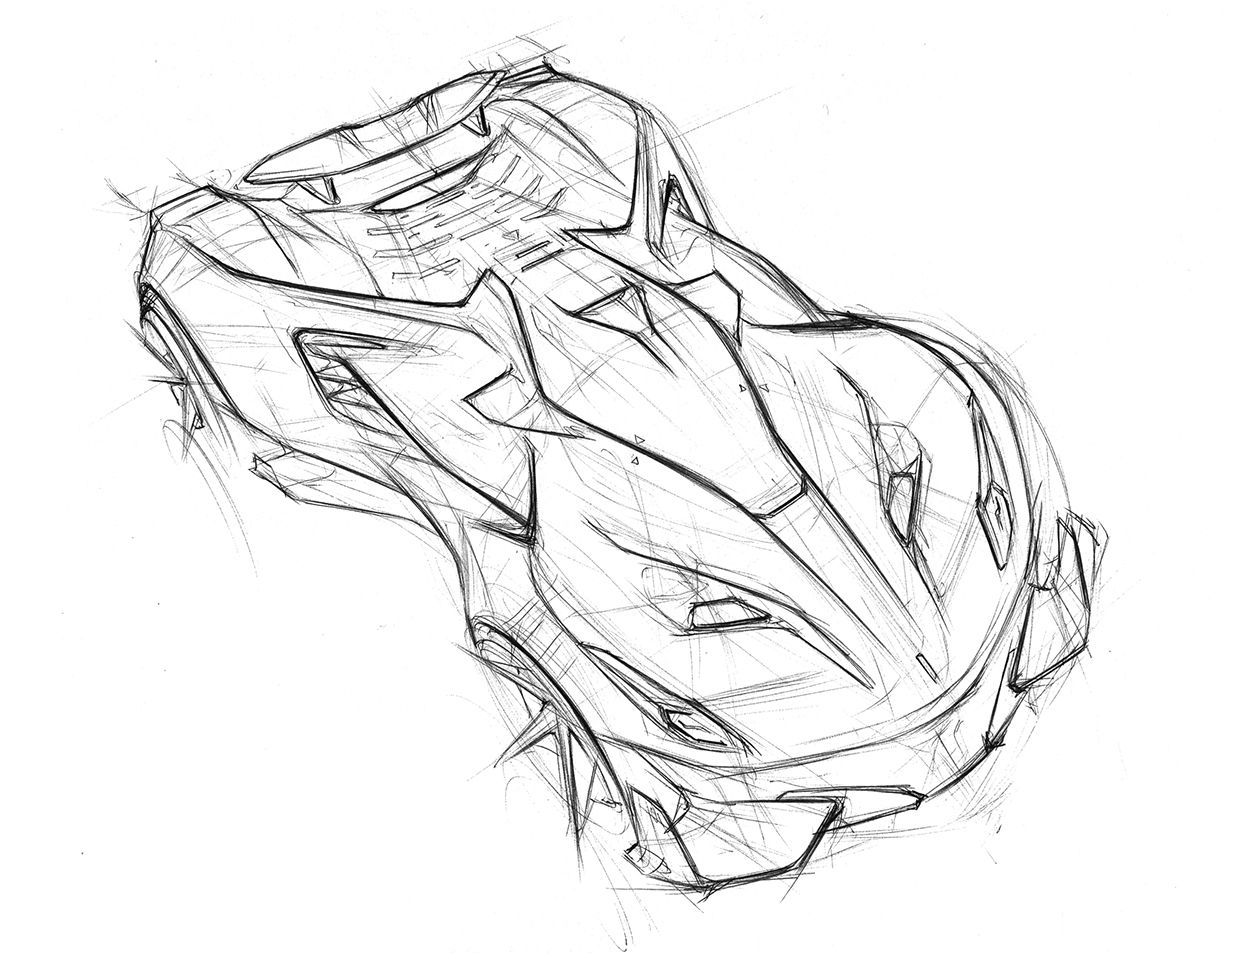 pin by wayne cheng on design sketches pinterest sketches car Concept Trucks of the Future automotive sketchbook iii